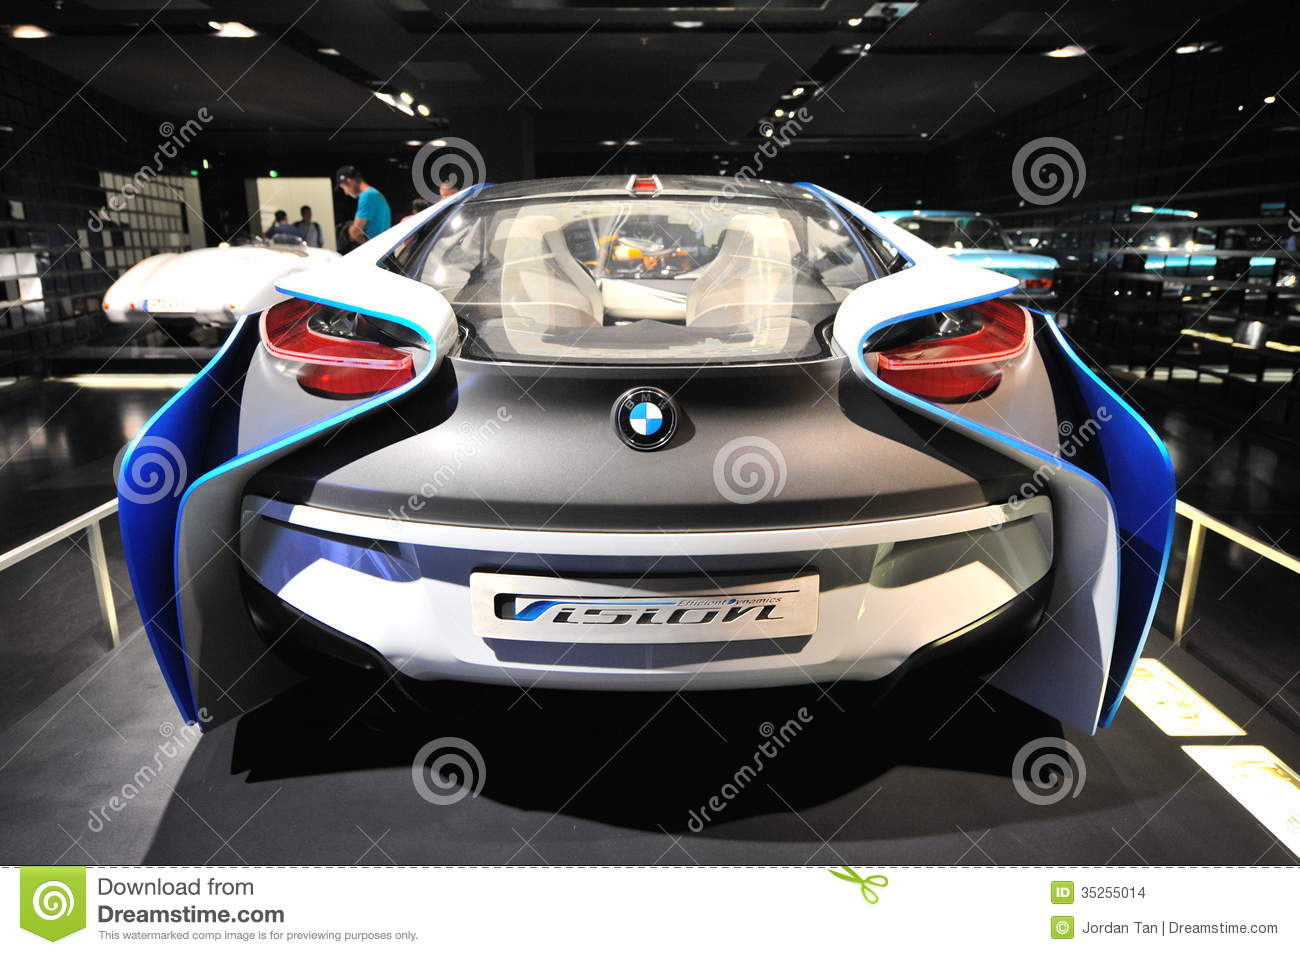 bmw vision efficient dynamics concept car on display in bmw museum editorial stock image image. Black Bedroom Furniture Sets. Home Design Ideas